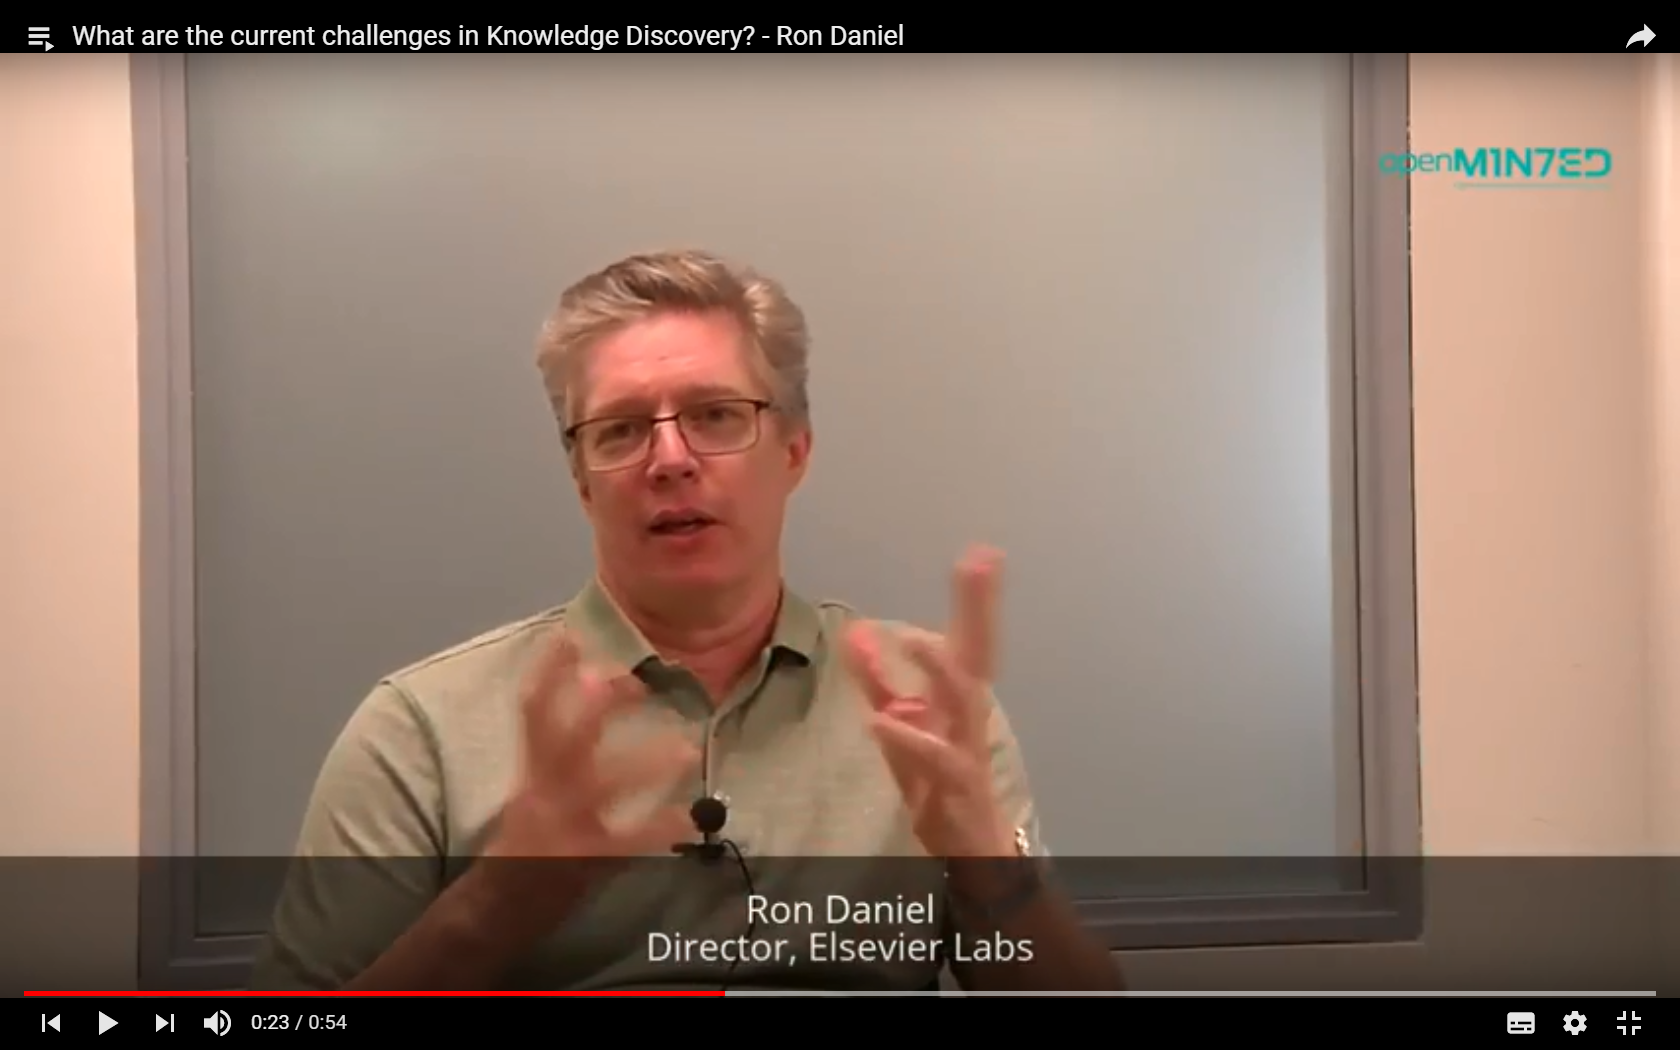 Key concepts and areas in TDM explained – Part 5: Knowledge Discovery